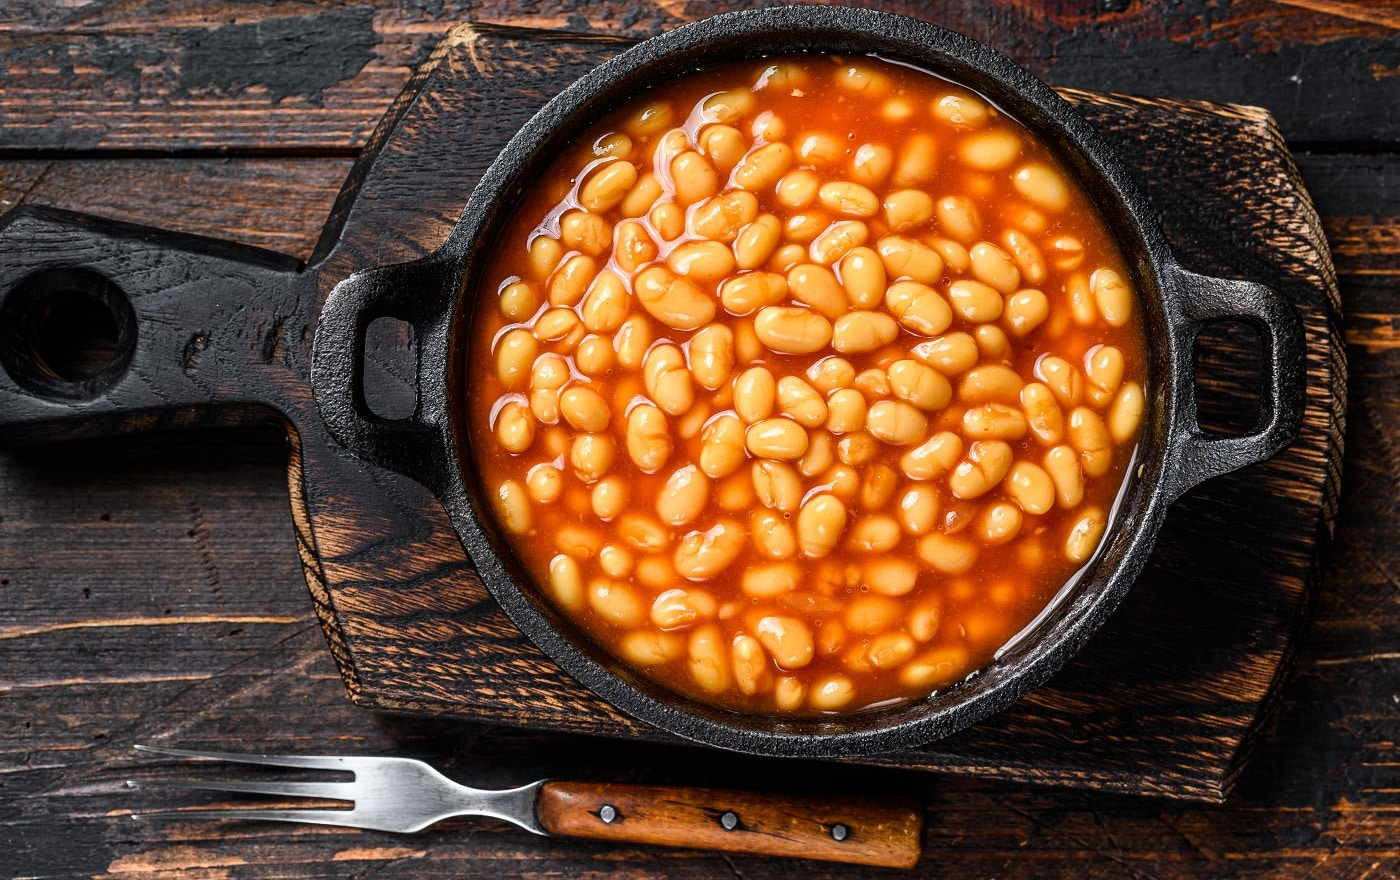 Beans in tomato sauce in a pan. Dark wooden background. top view.